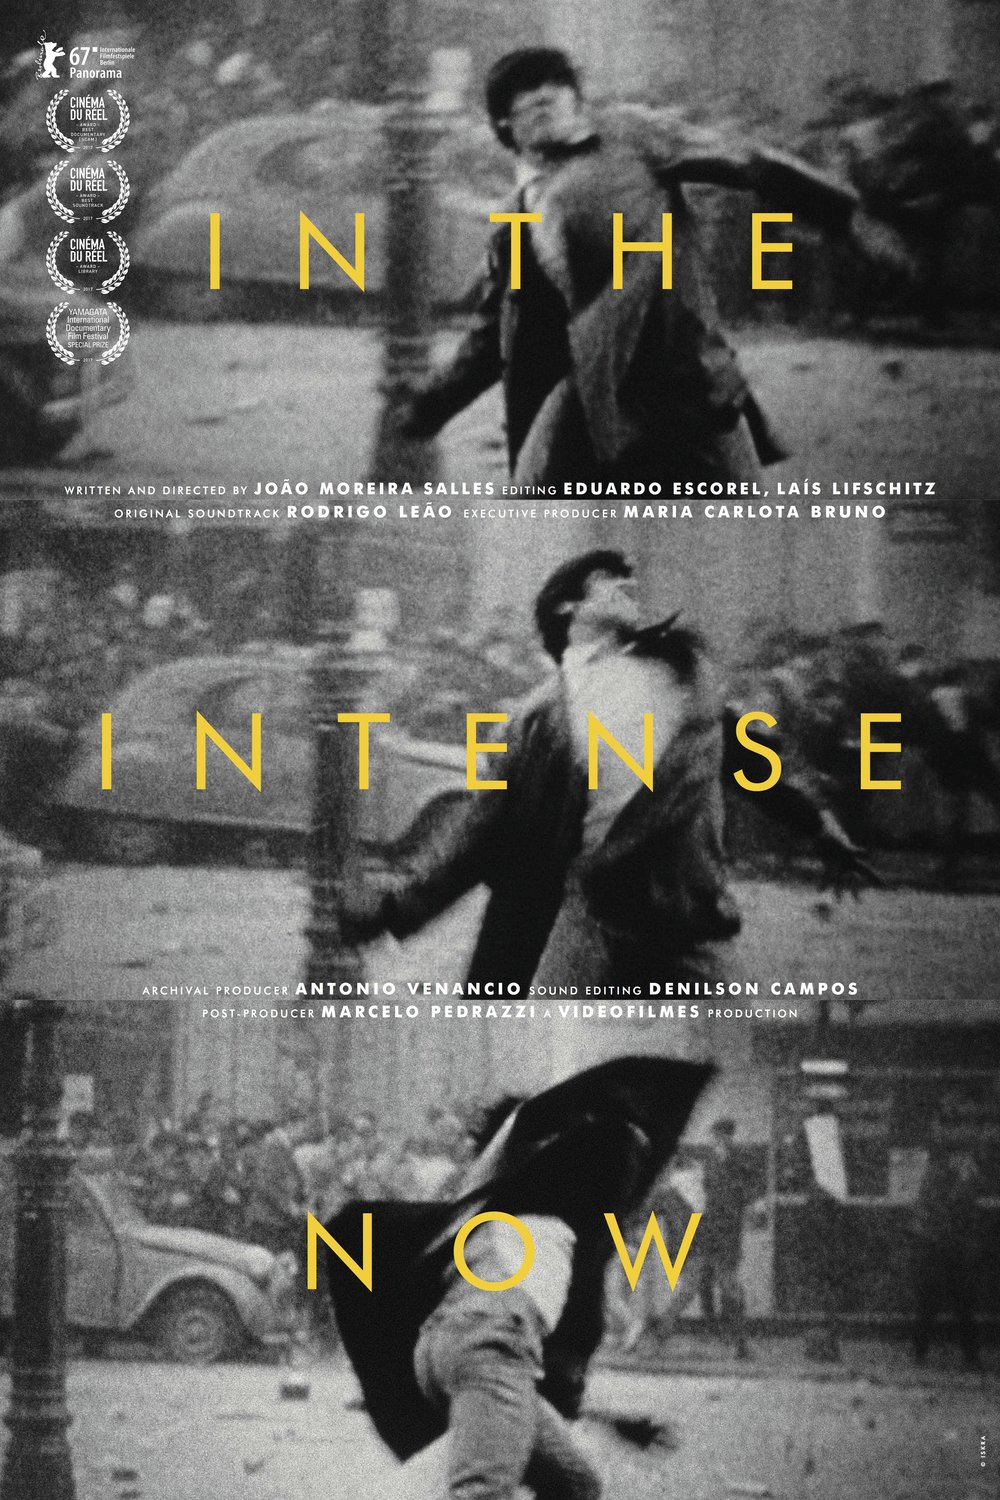 no intenso agora_poster_engl_60x90_20180125_LOW-RES-JPEG.jpg